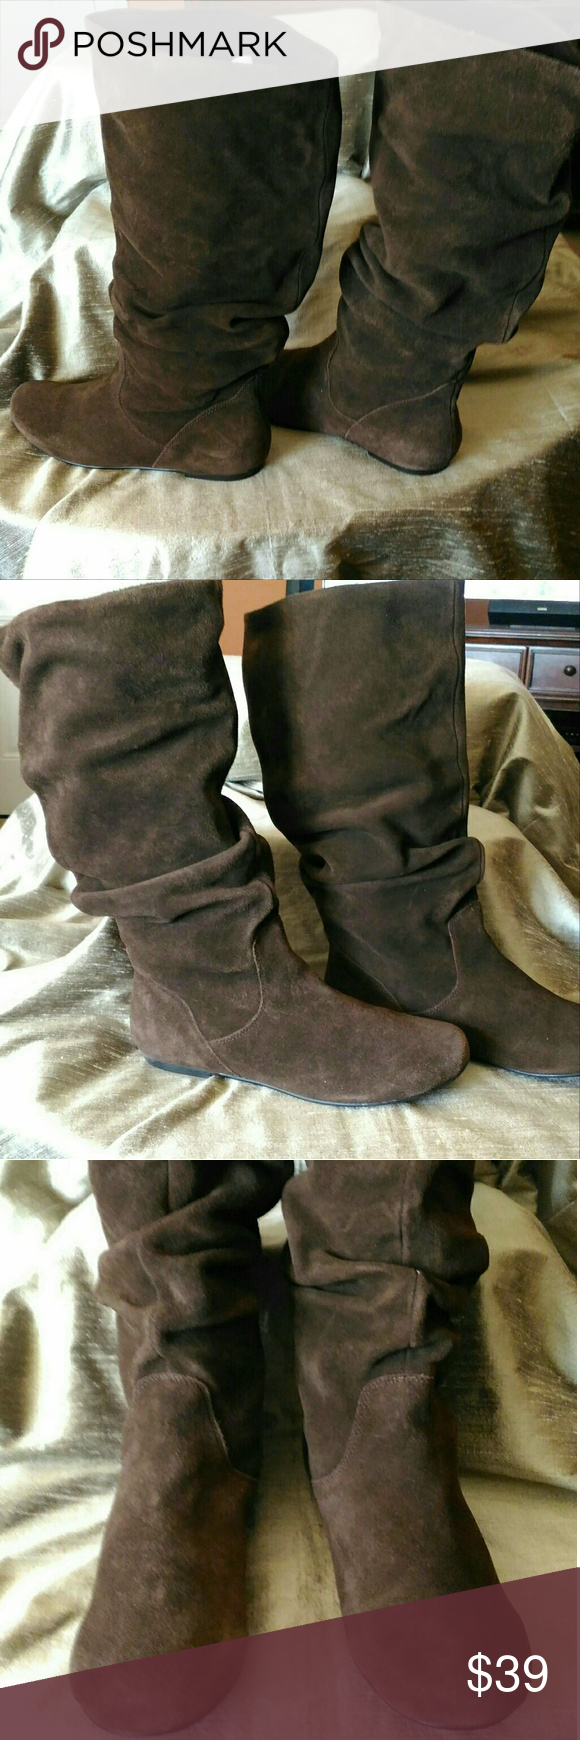 luego Excremento Amado  Steve Madden TIANNA SLOUCH BOOT IN BROWN SUEDE EUC | Slouched boots, Brown  suede, Boots